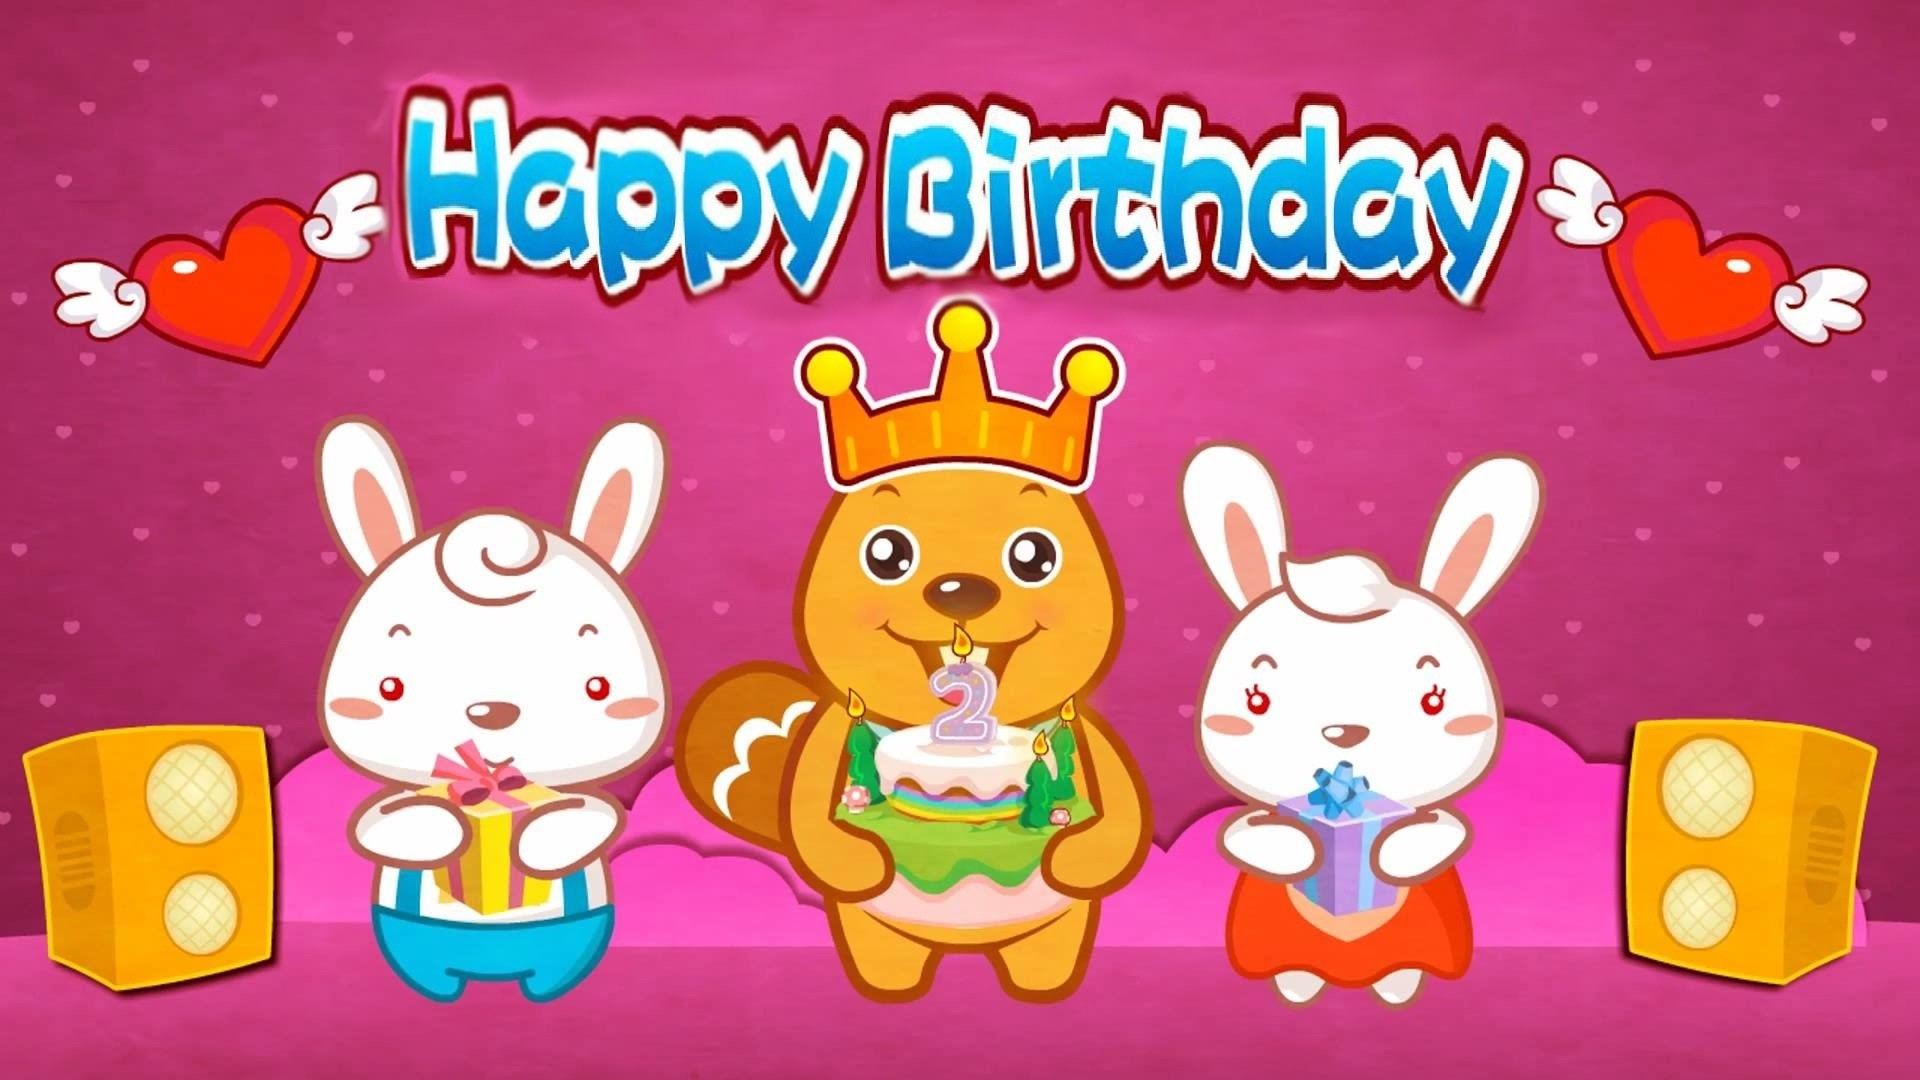 1920x1080 Happy birthday wishes funny animation wallpapers